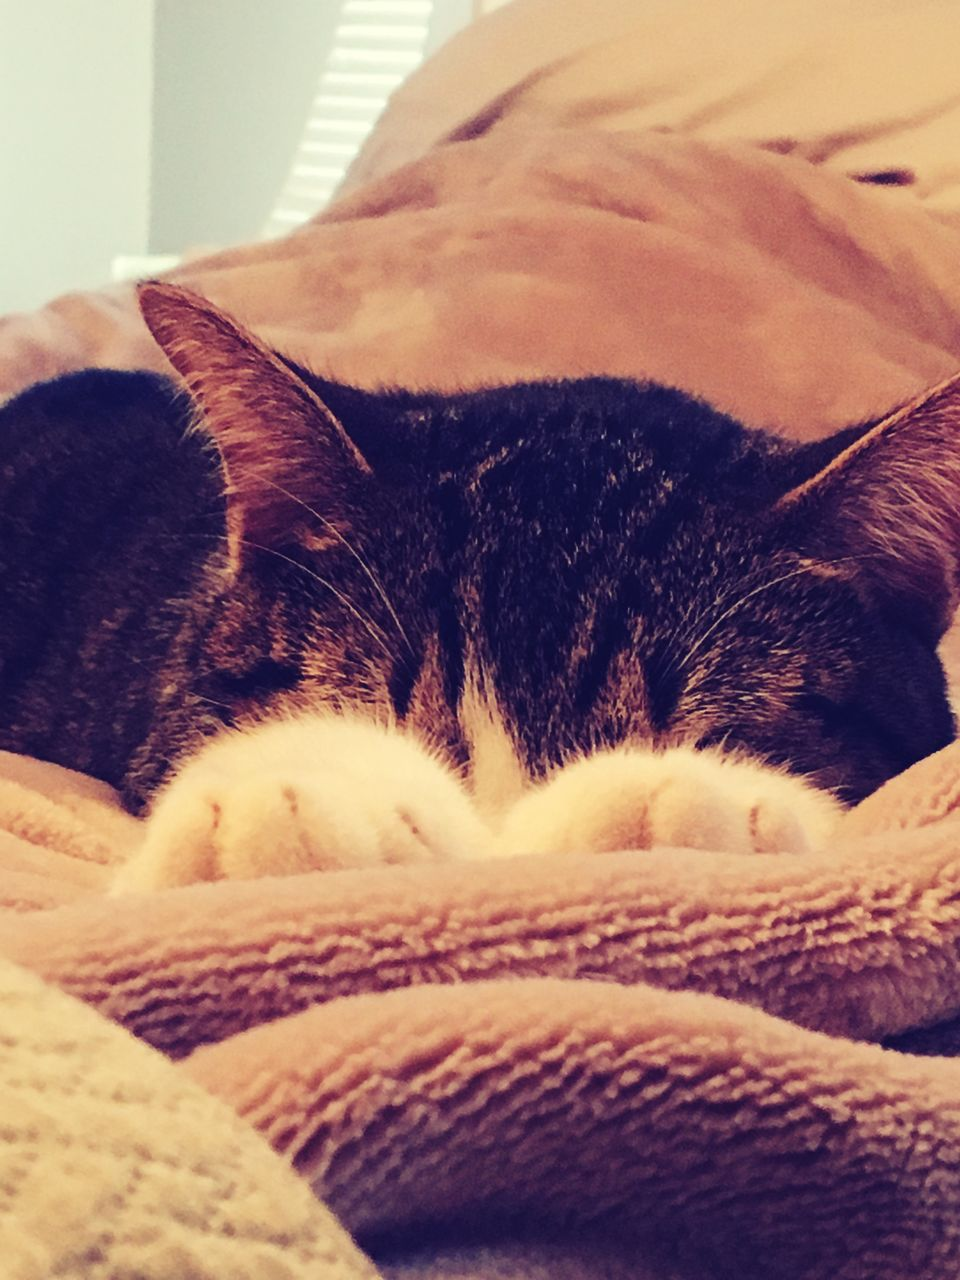 domestic cat, one animal, indoors, pets, domestic animals, animal themes, feline, mammal, cat, sleeping, relaxation, no people, home interior, close-up, day